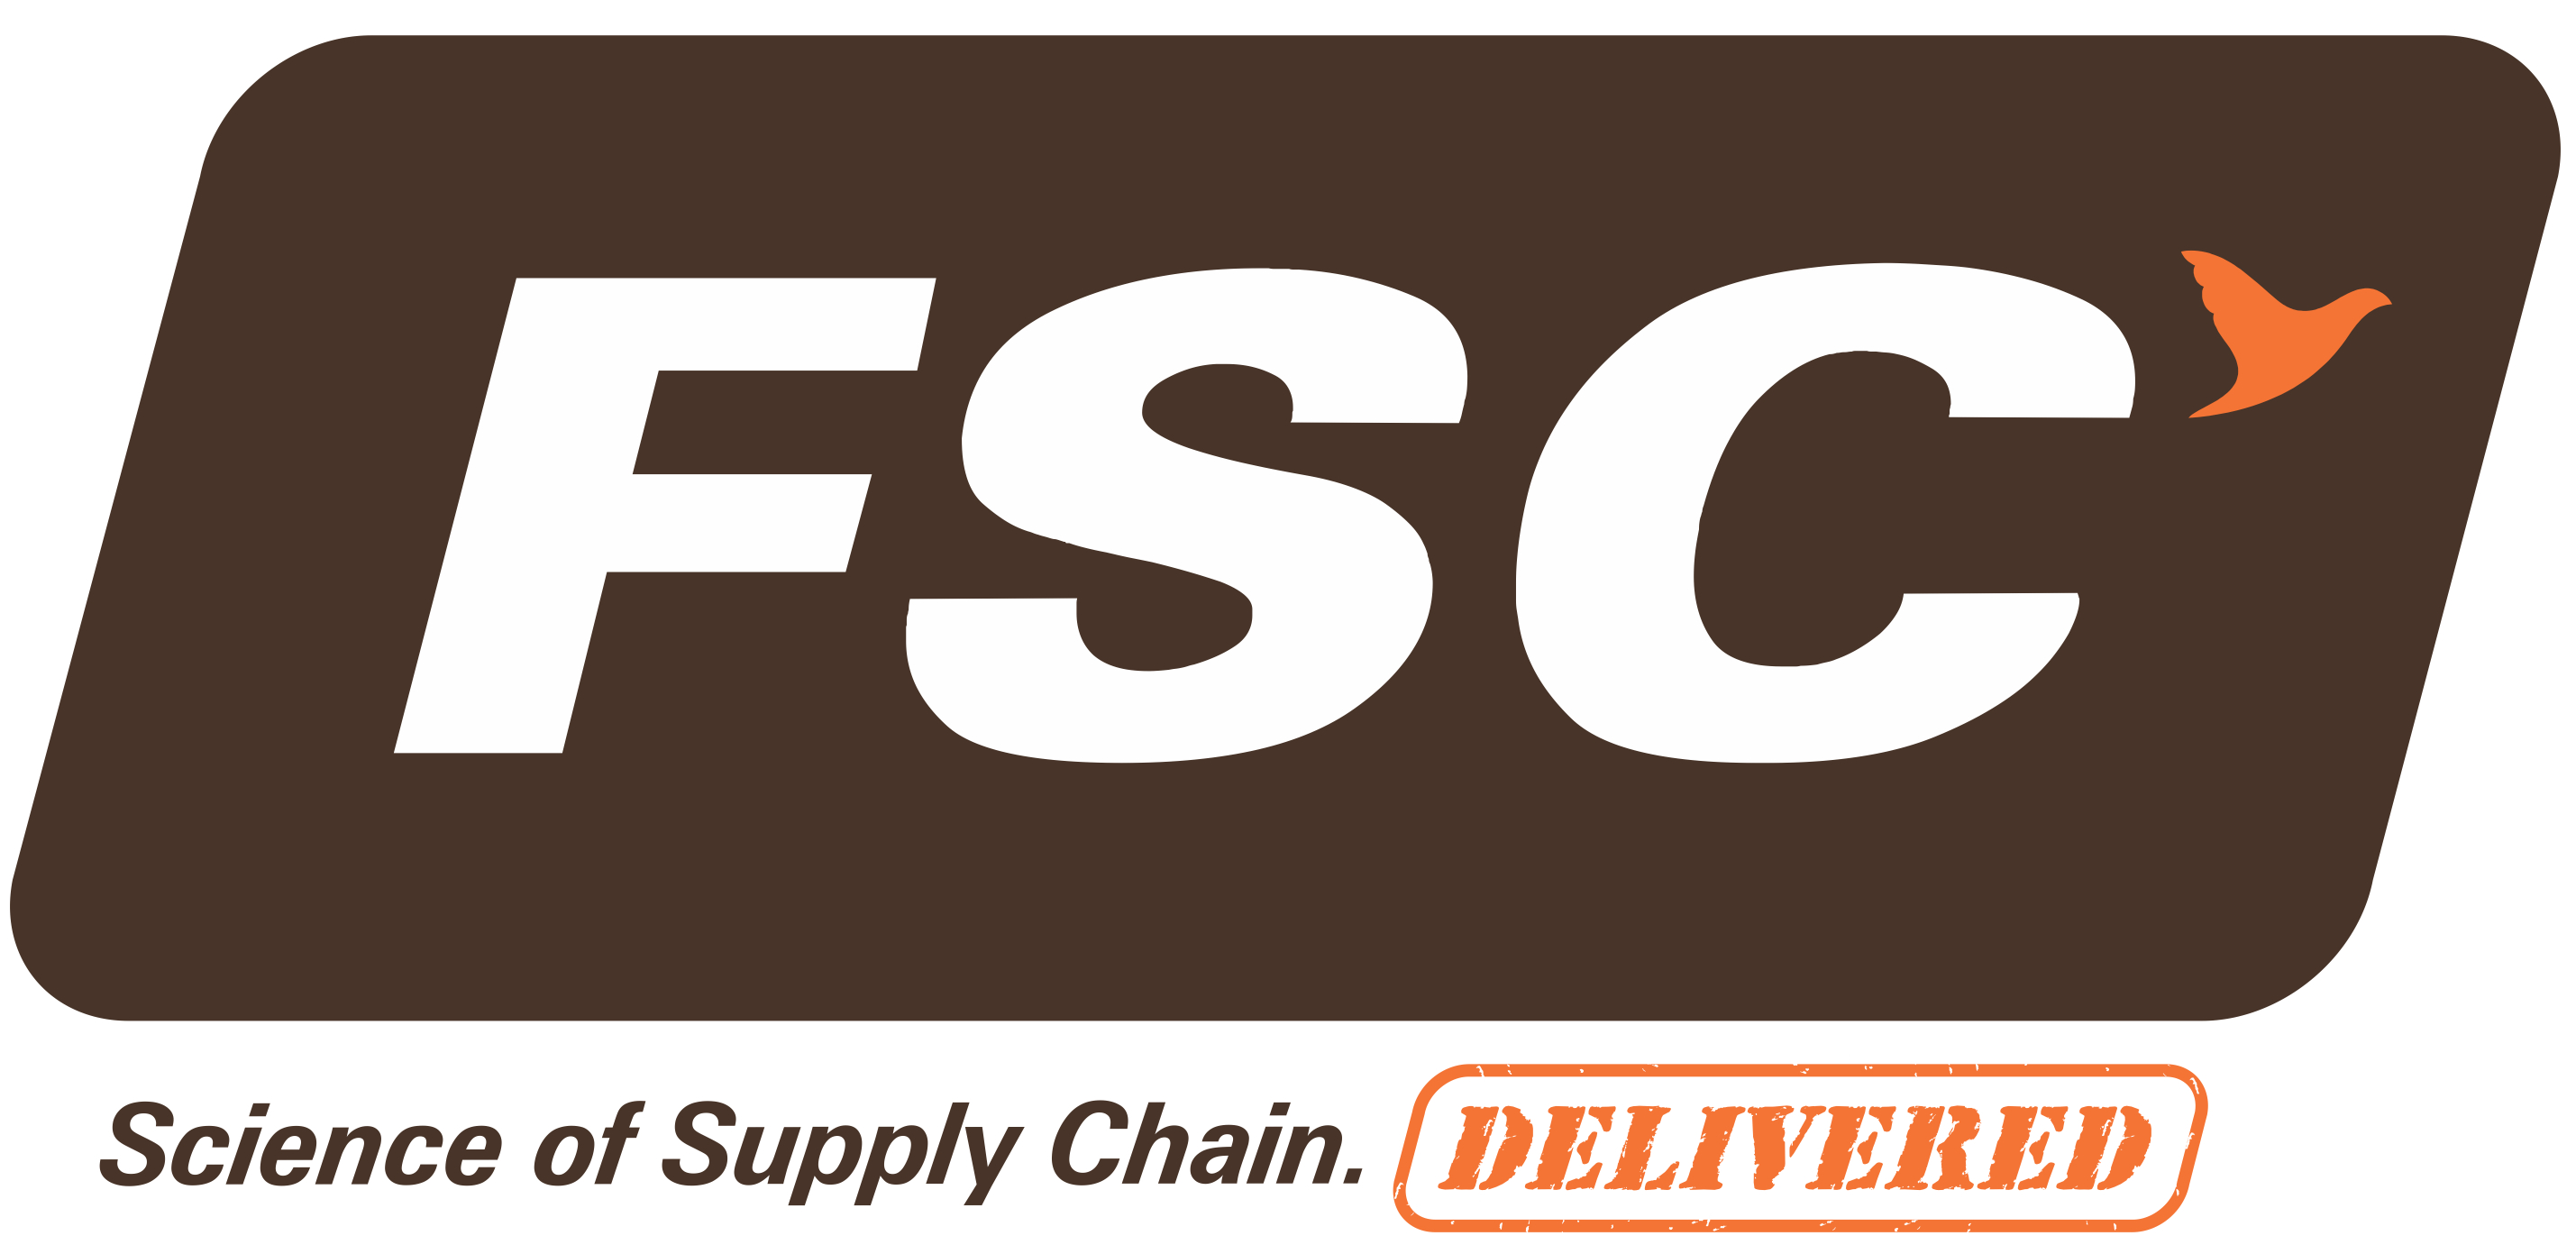 Future Supply Chains Image